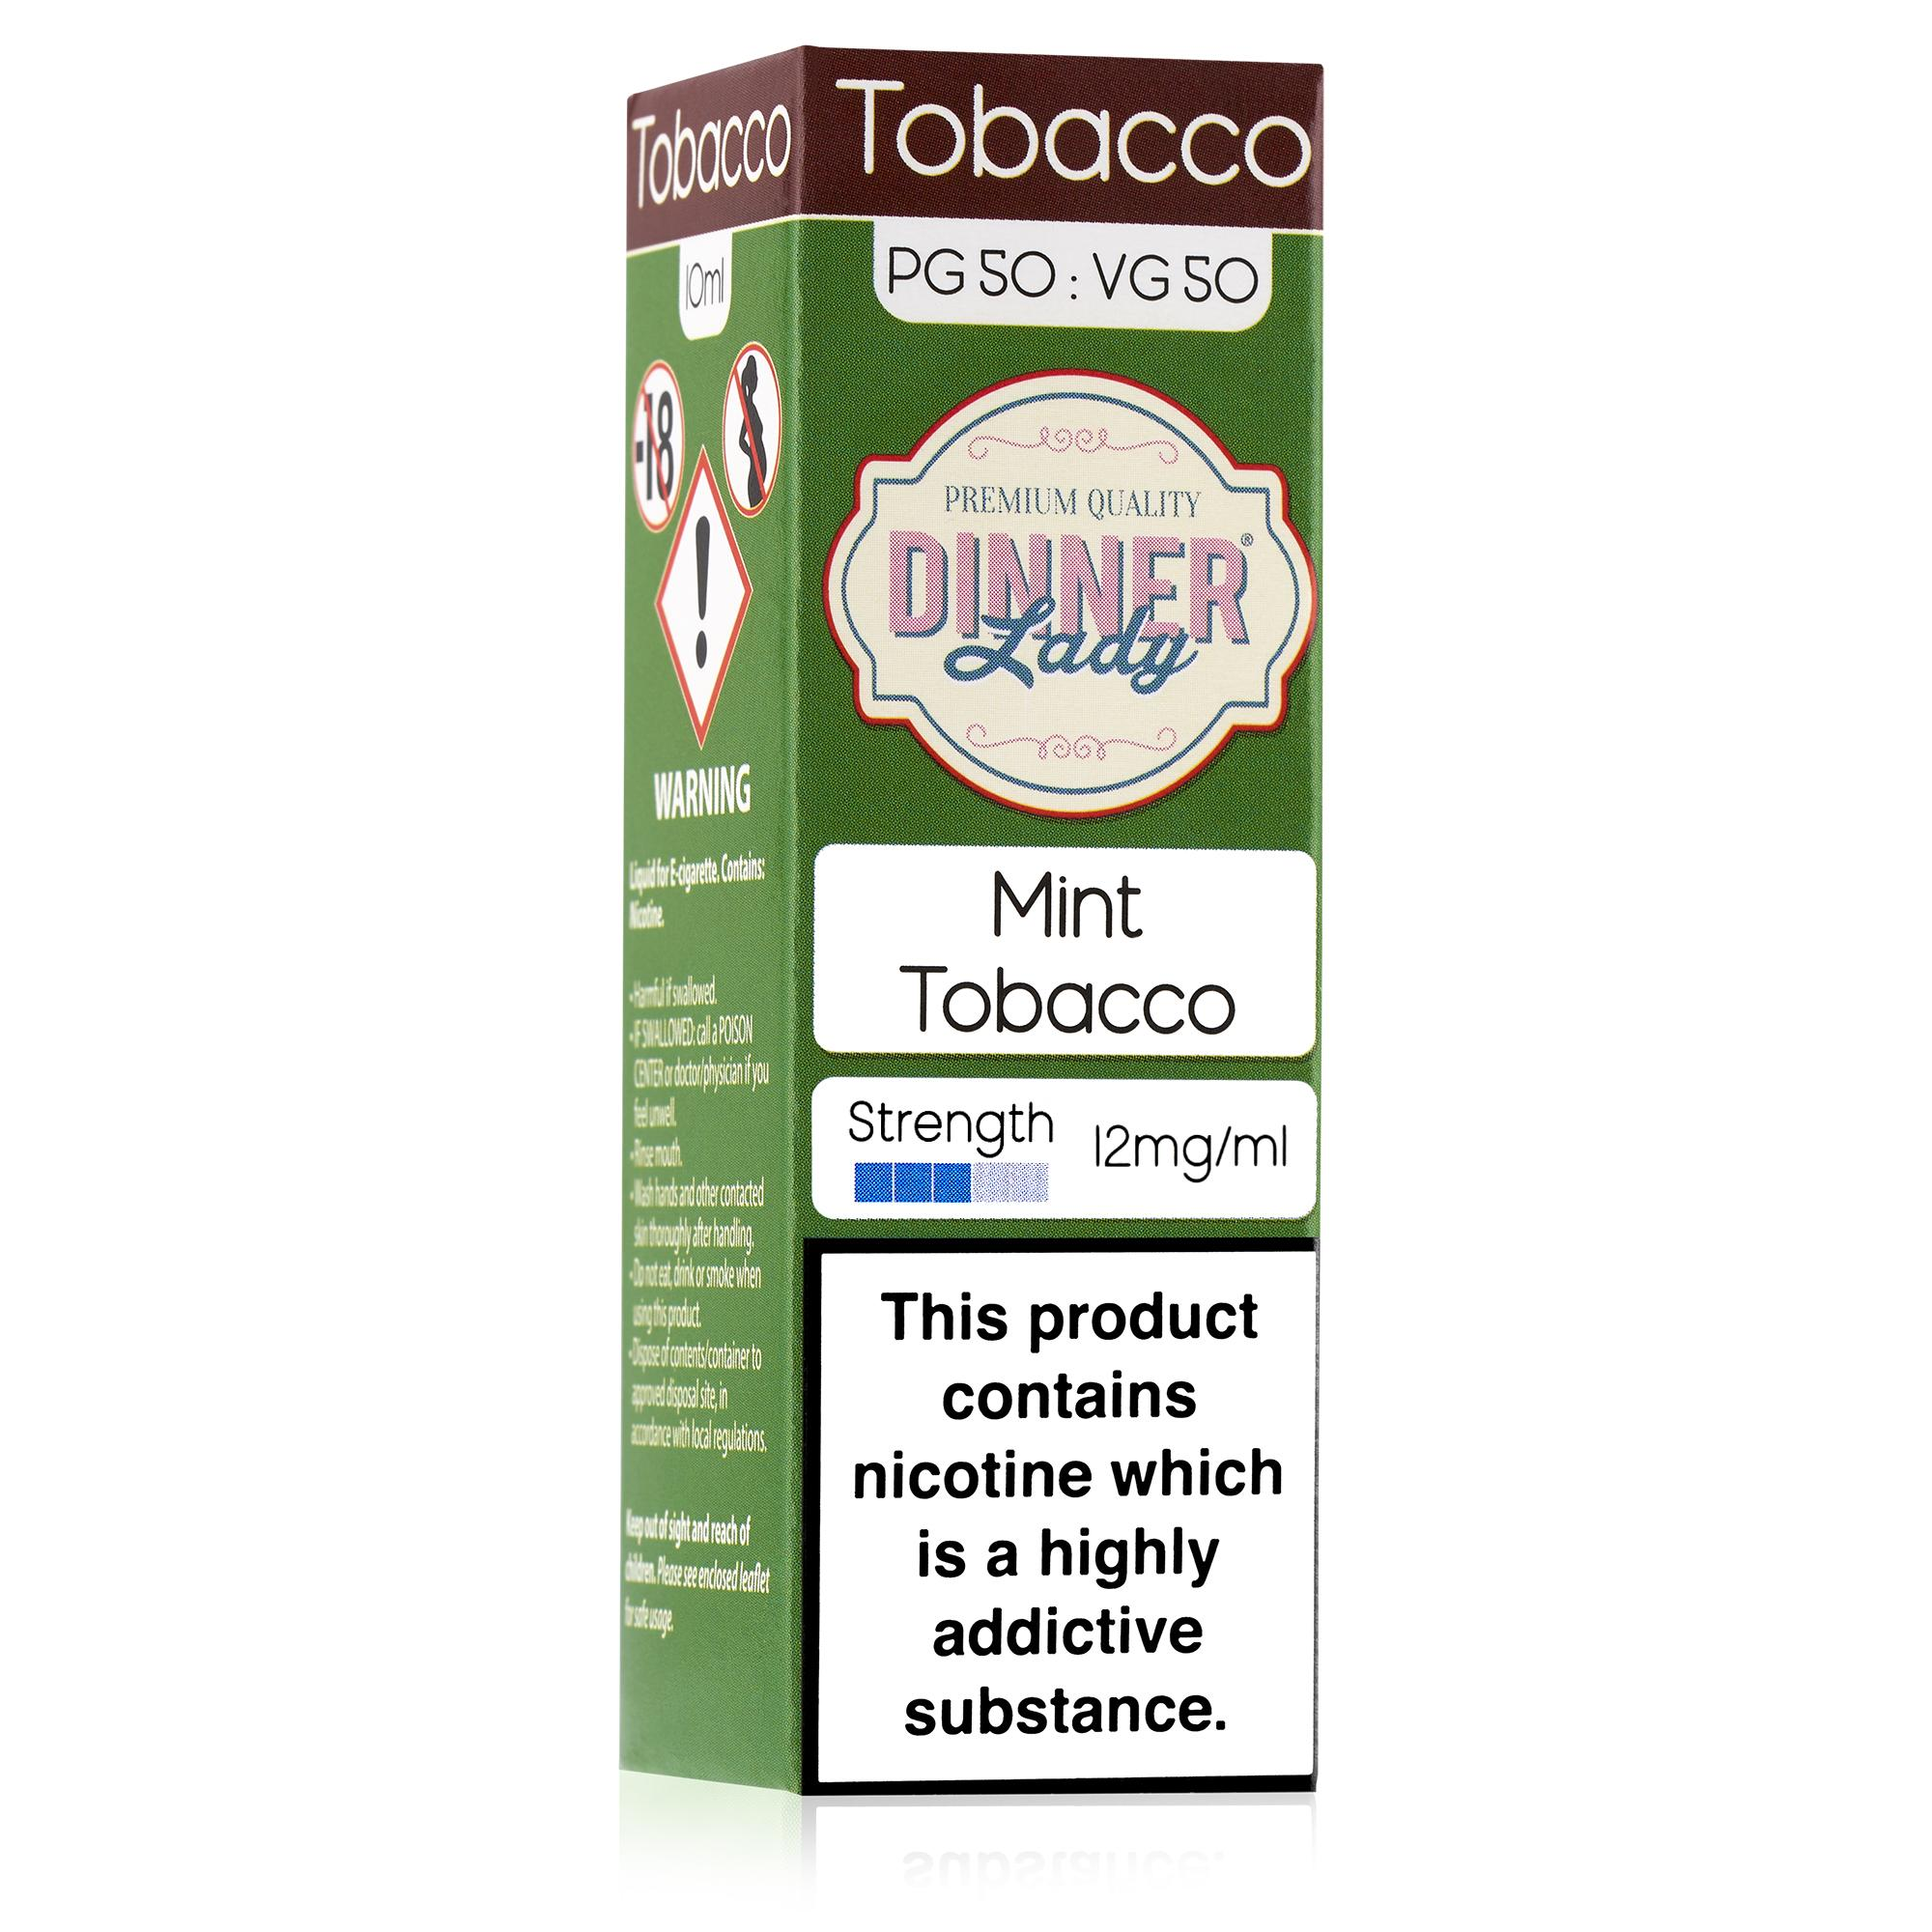 Dinner Lady 50:50 10ml Mint Tobacco E-liquid - Packaging